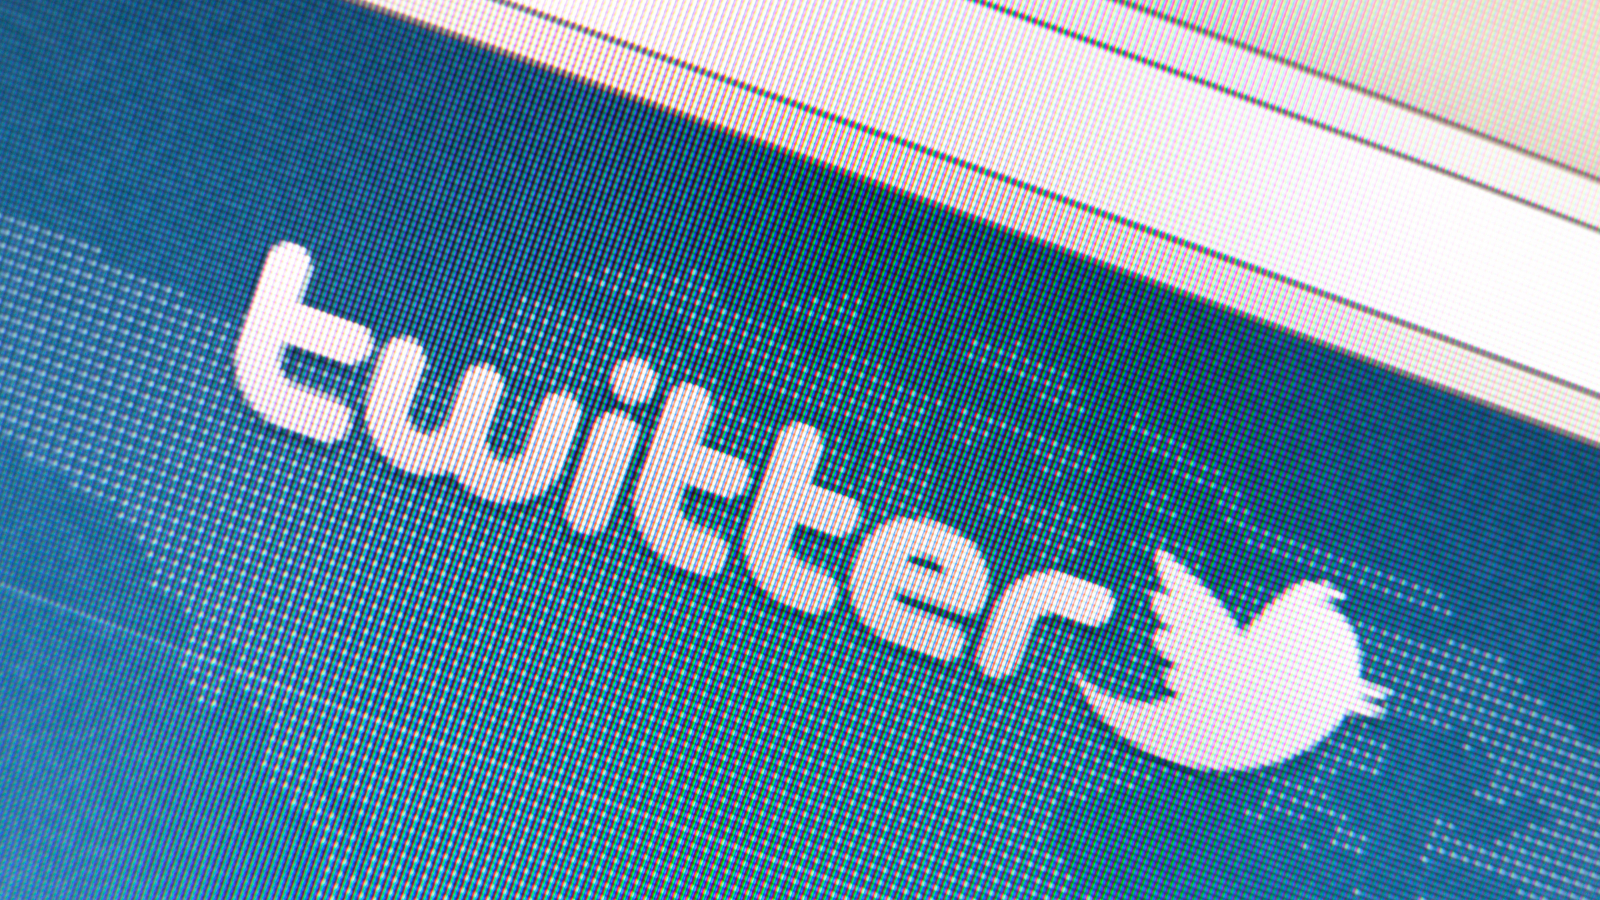 Twitter Admits To Having Shared User Data Without Their Permission